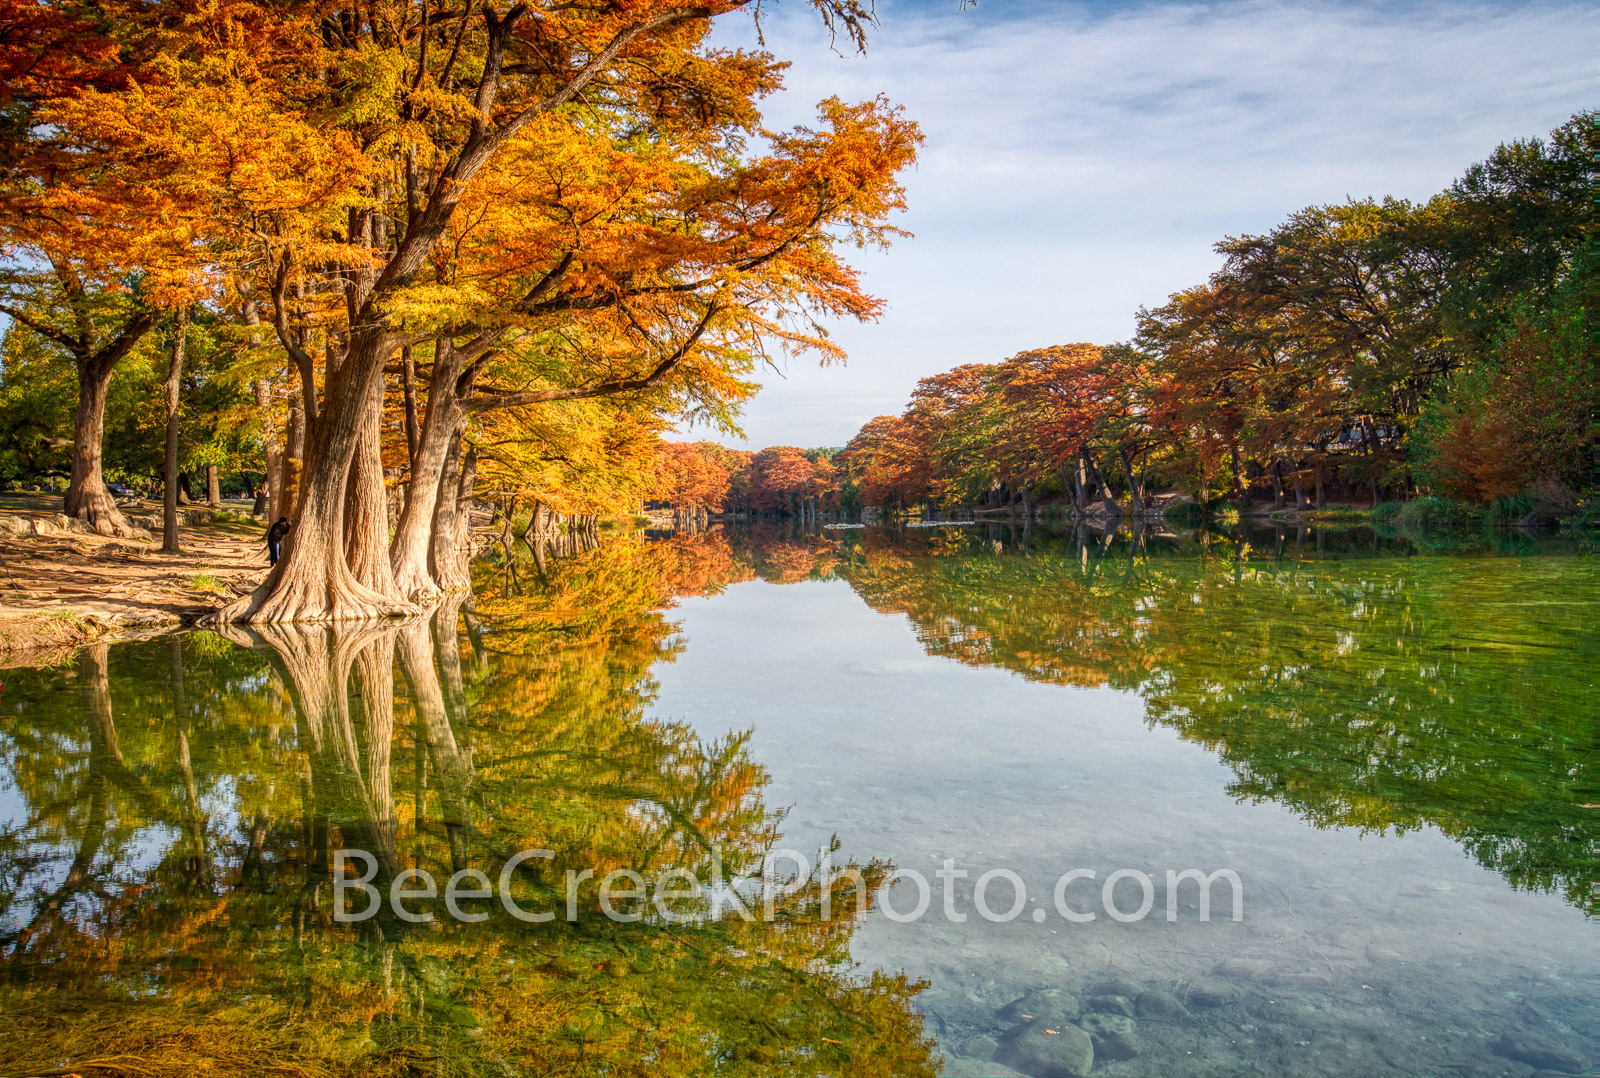 fall, frio river, scenic, fall scenery, autumn, autumn scenery, fall colors, texas hill country, hill country, colorful, bald cypress, fall season, emerald green water, river banks, river, serene, , photo